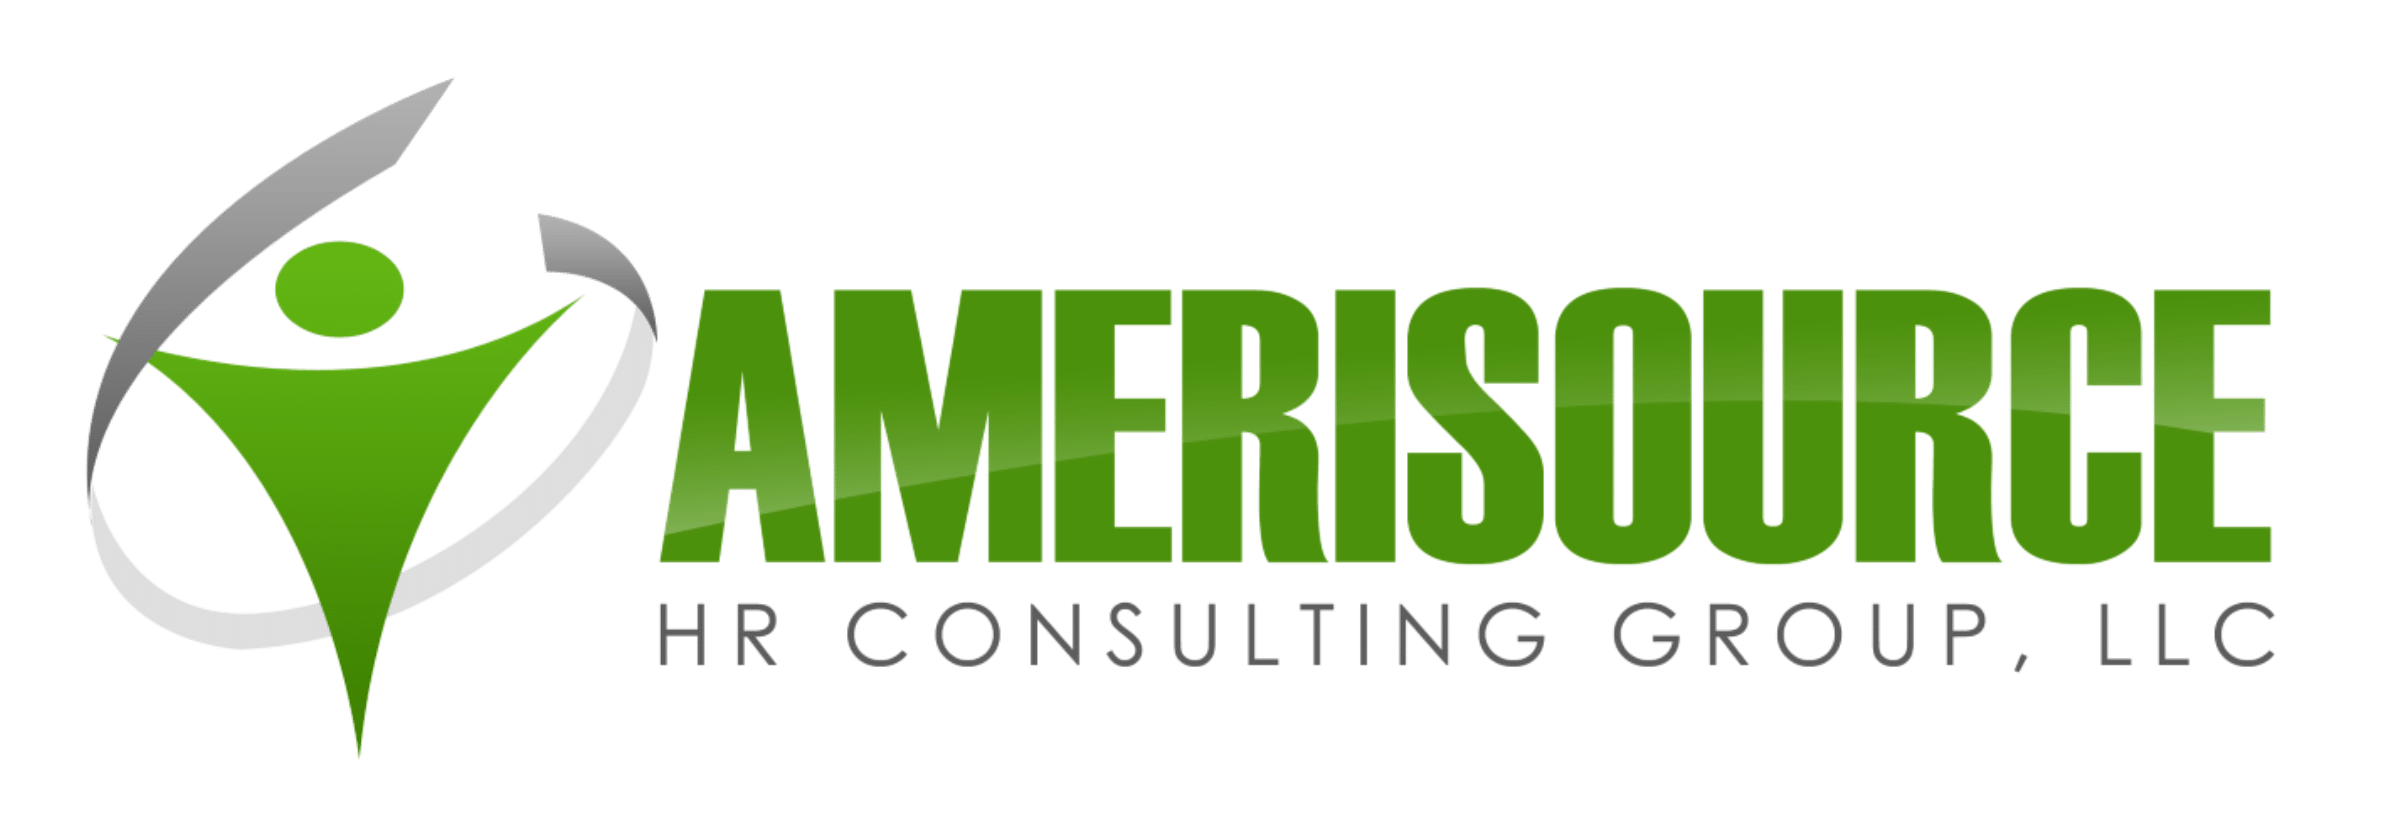 AmeriSource HR Consulting Group, LLC